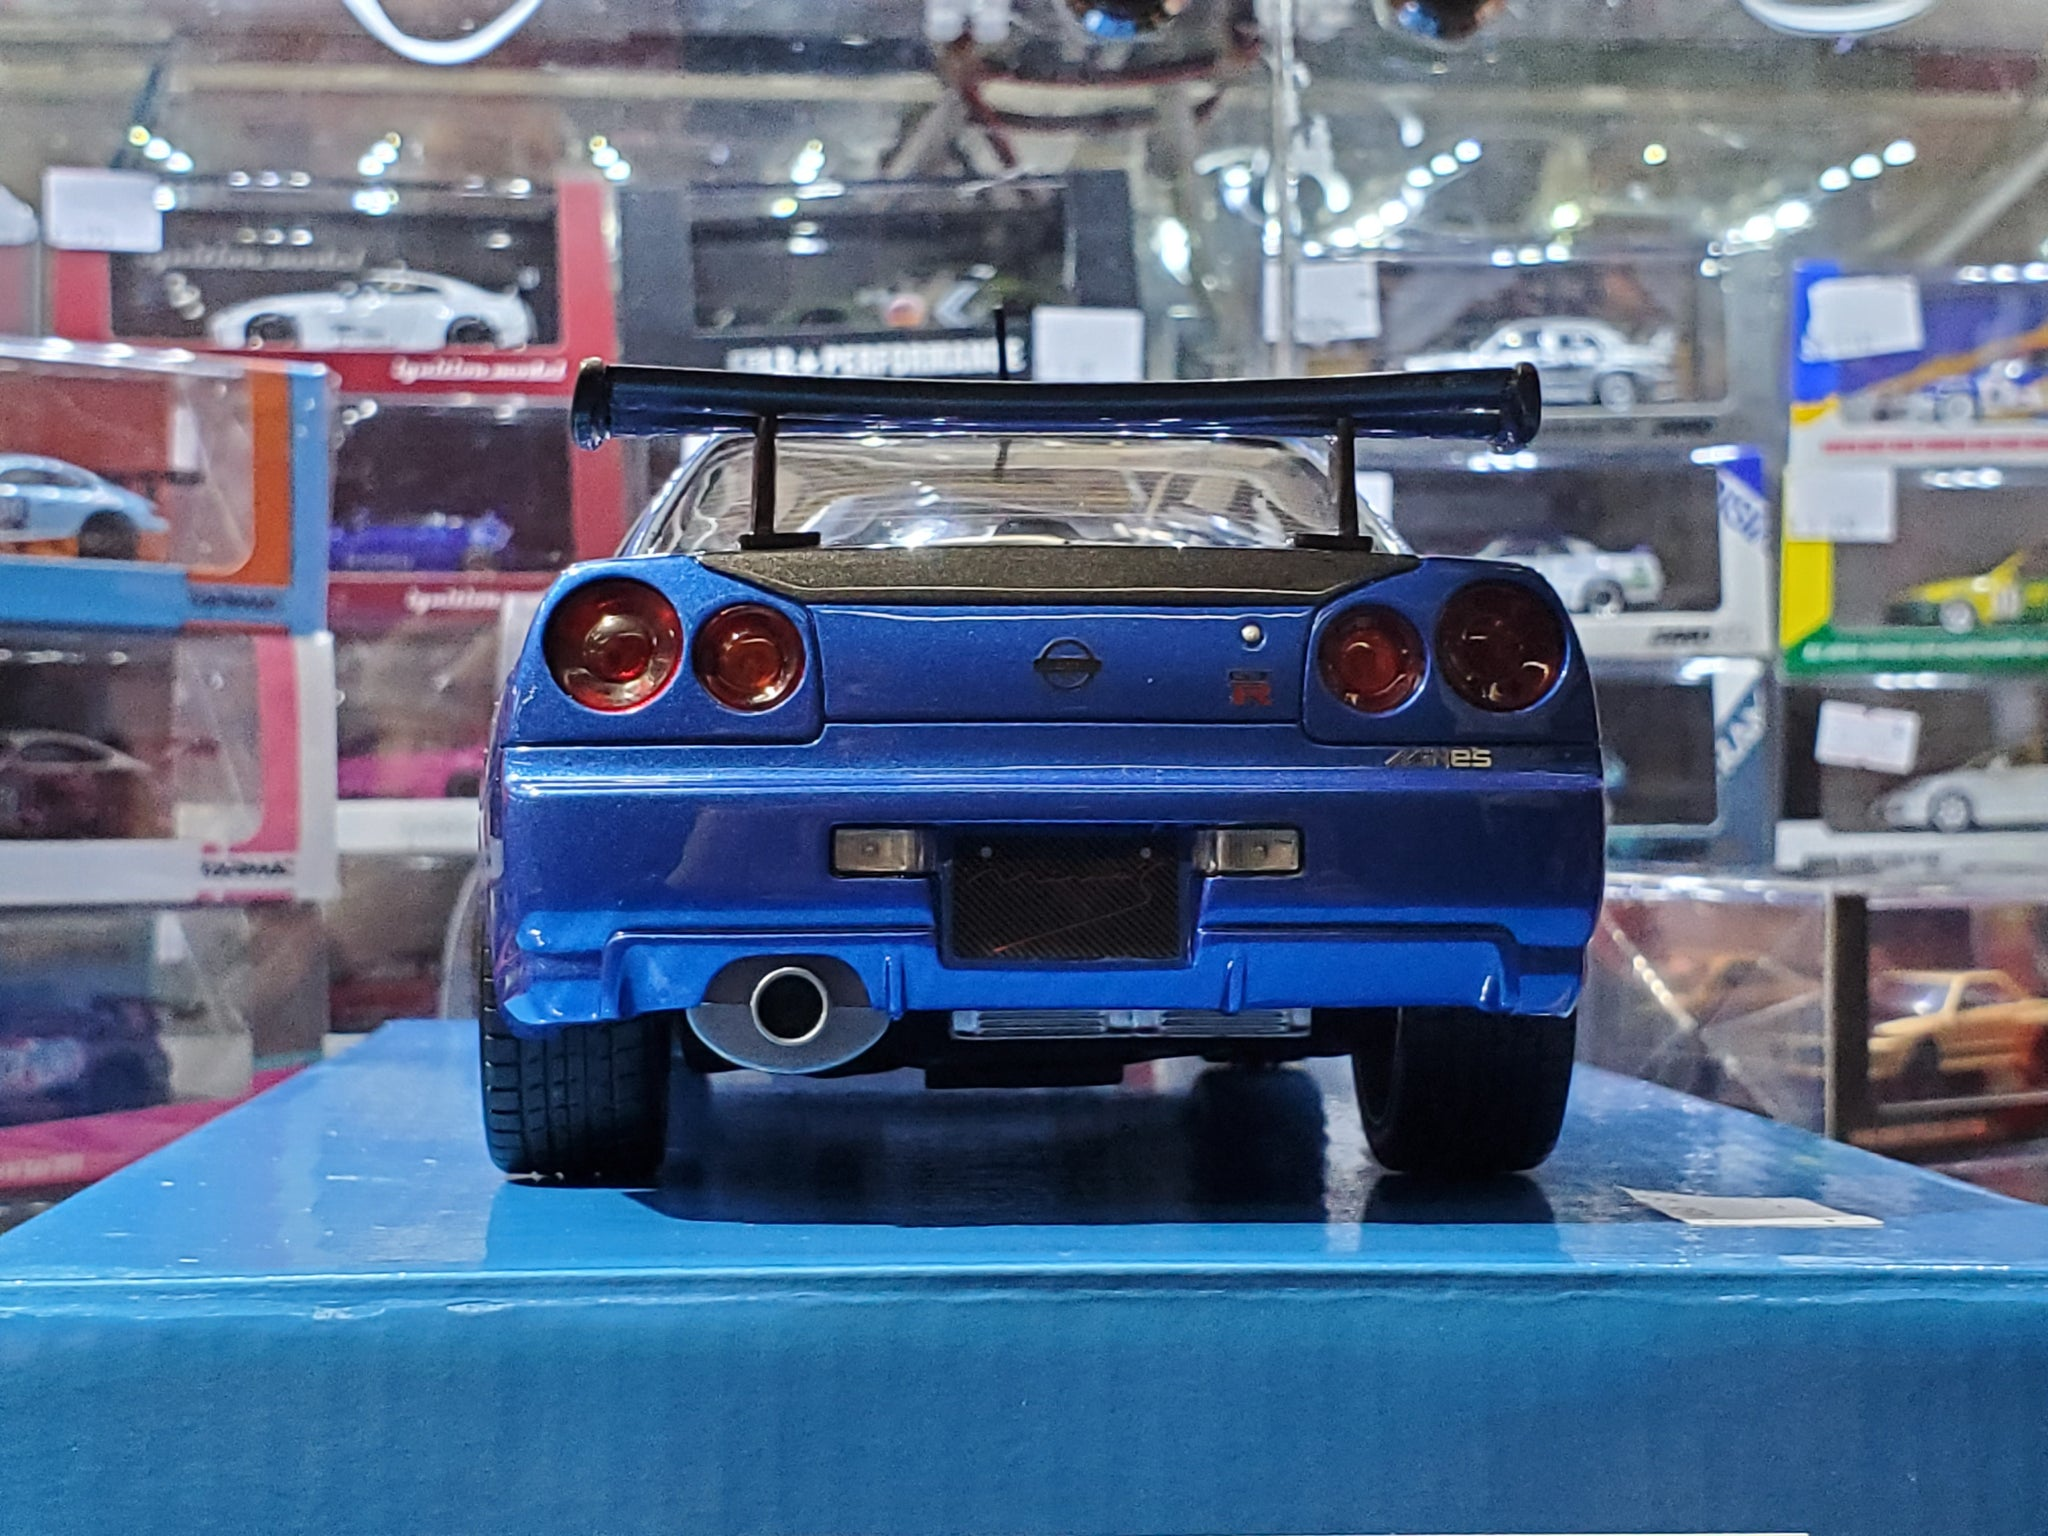 Diecast Toy Vehicles 1 18 Route Twisk Rt09 Otto Mobile Mine S Nissan Skyline R34 Gtr Bayside Blue Com